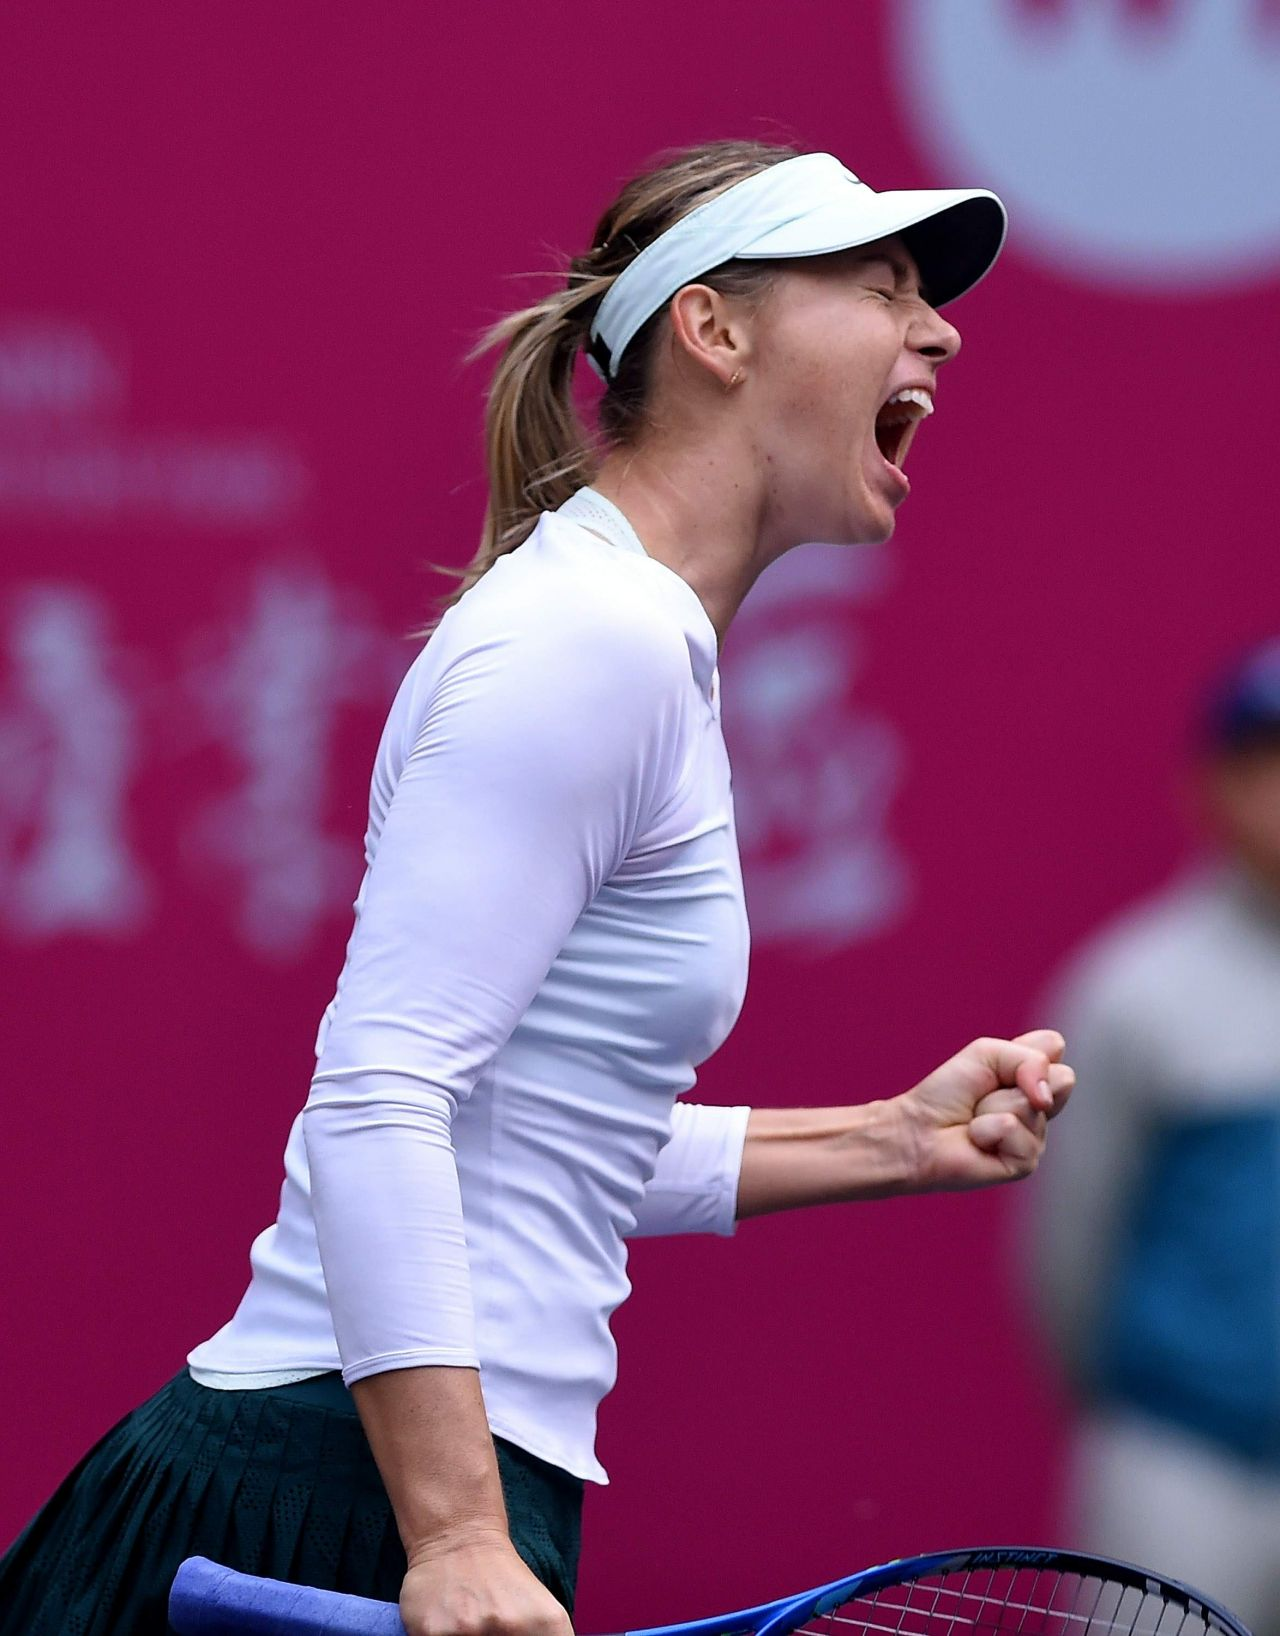 Maria Sharapova - WTA Tianjin Open Finals in Tianjin 10/15 ...